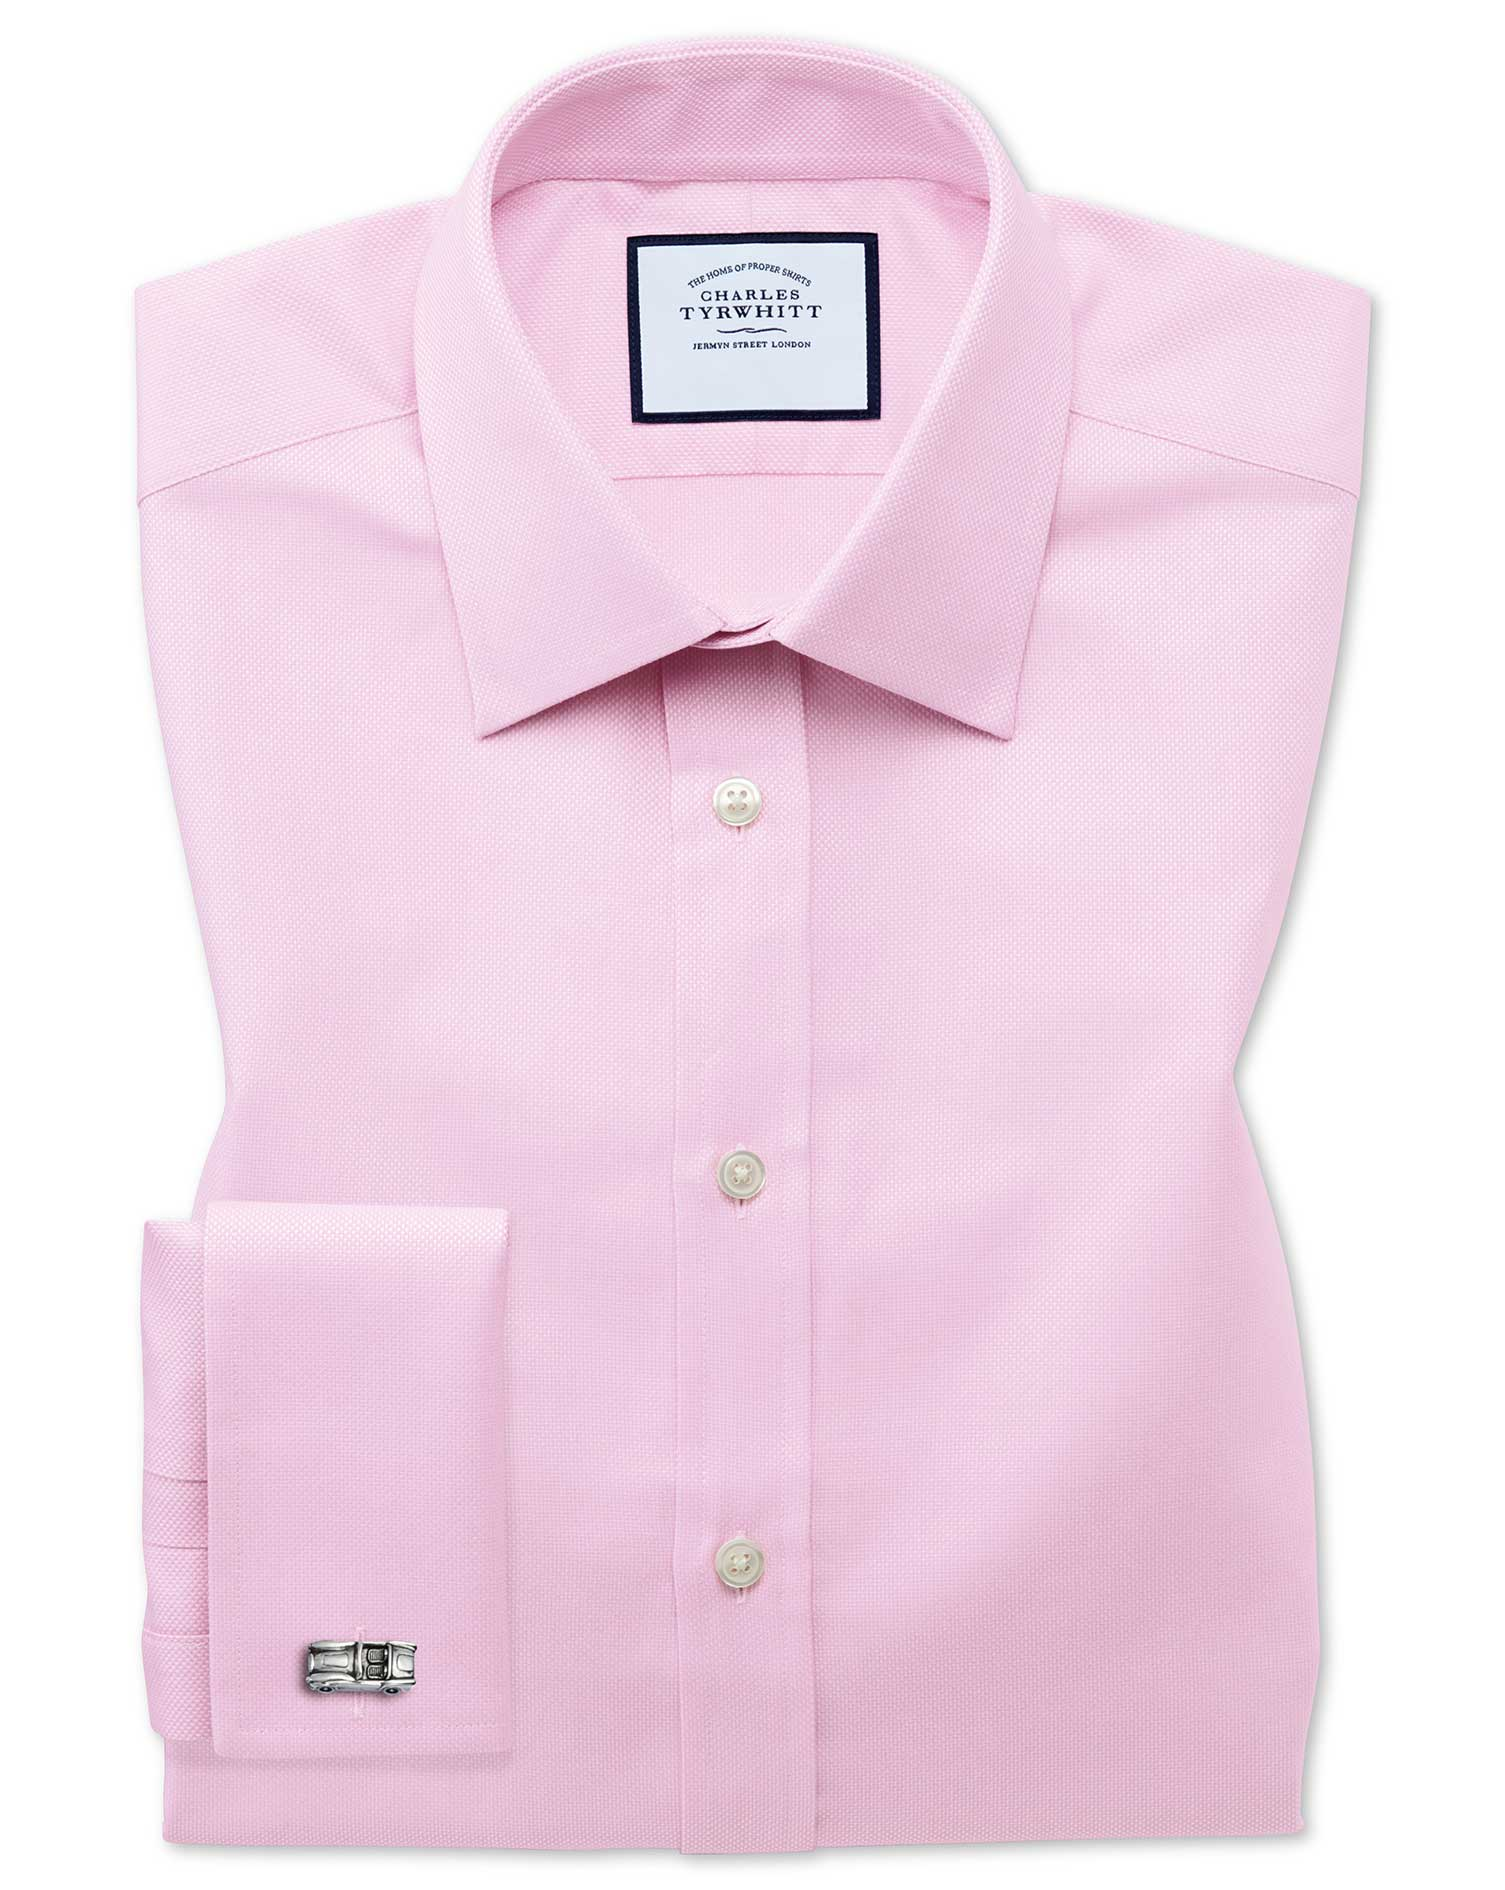 Extra Slim Fit Egyptian Cotton Royal Oxford Pink Formal Shirt Single Cuff Size 15.5/32 by Charles Ty